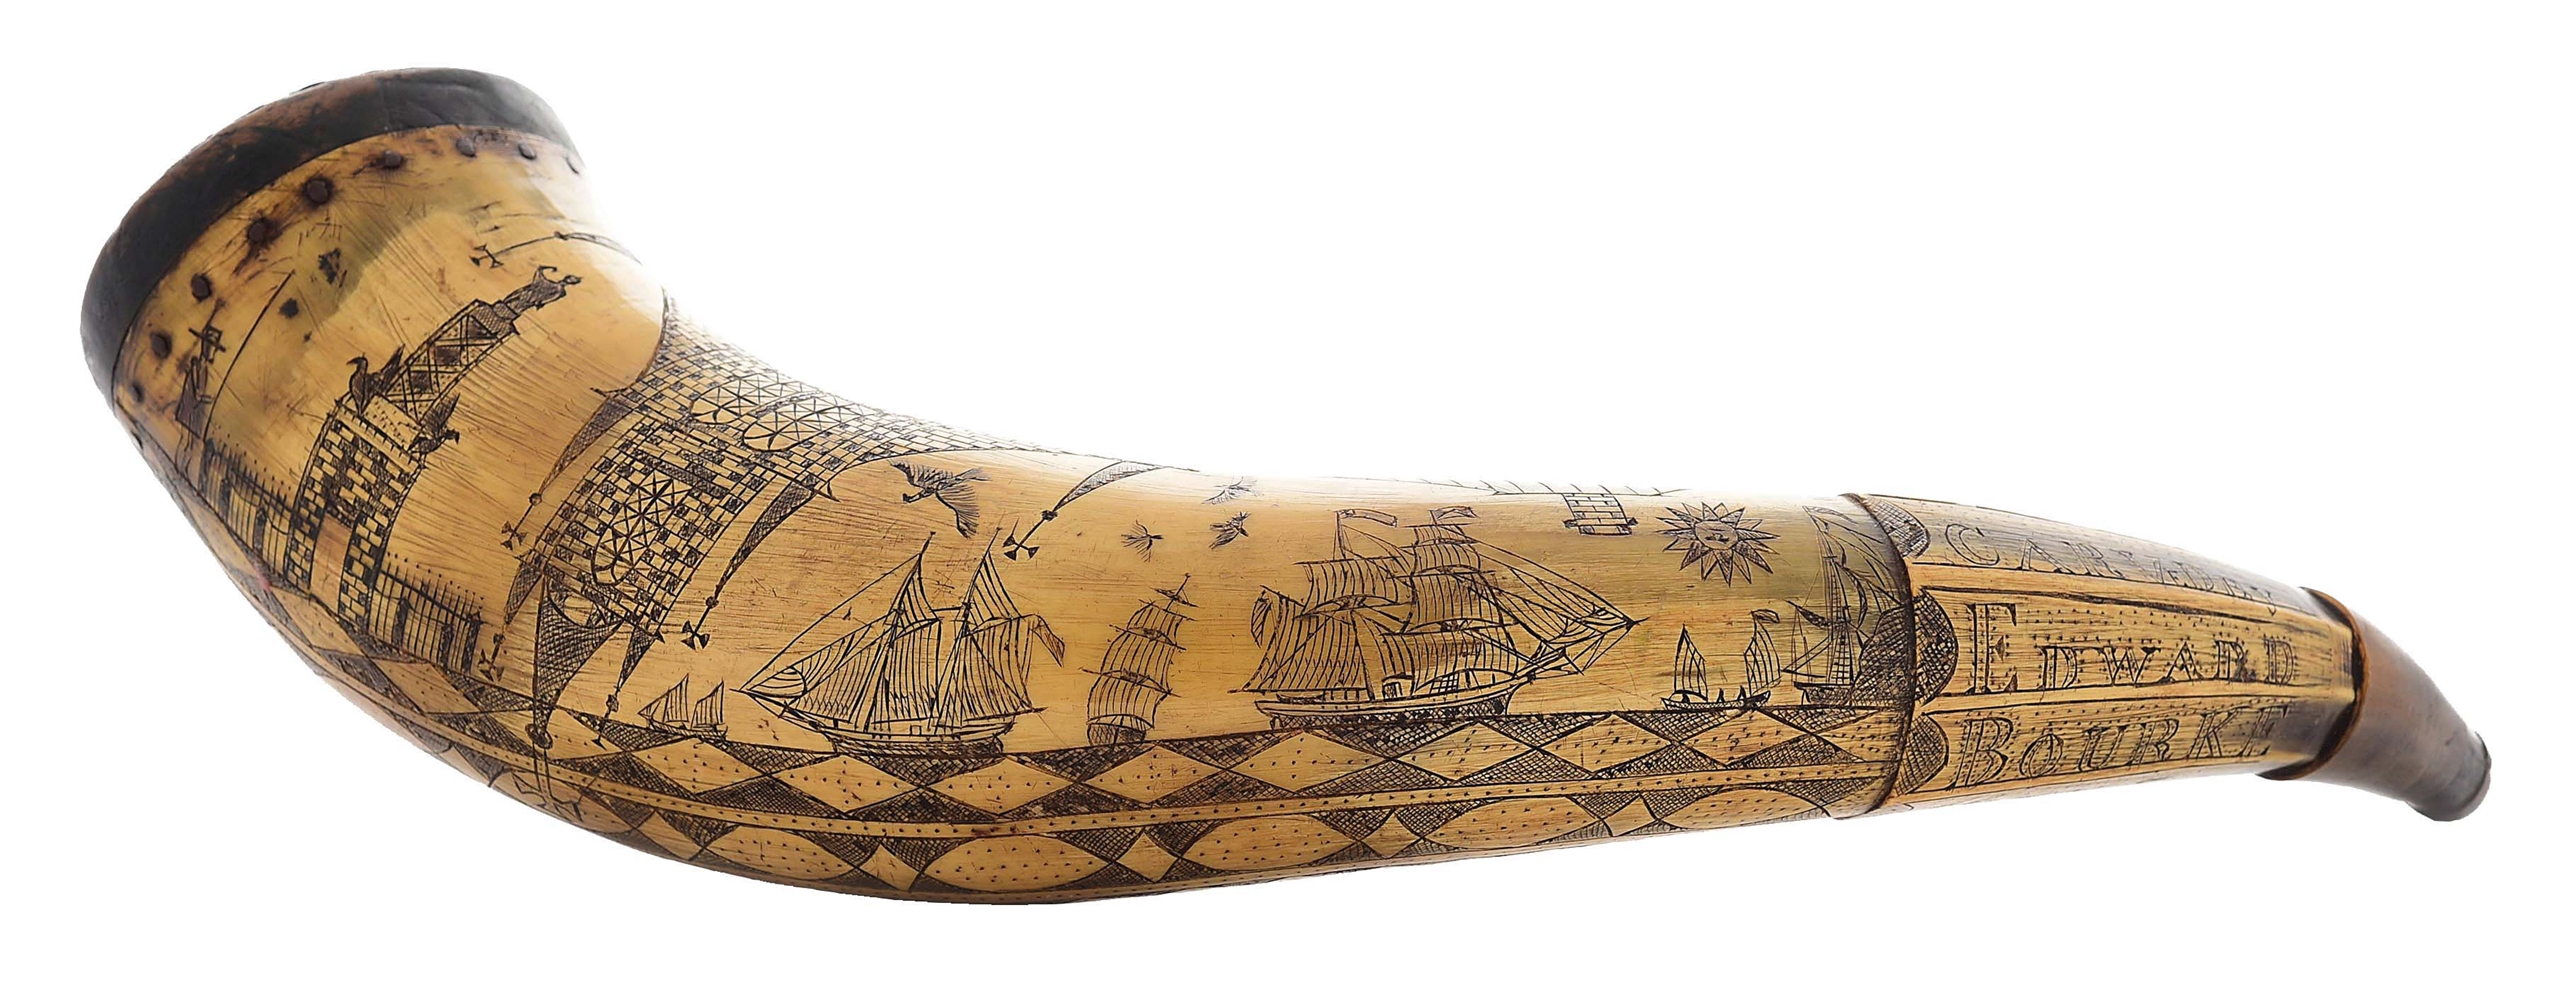 LARGE ENGRAVED POWDER HORN OF EDWARD BOURKE DATED 1868.